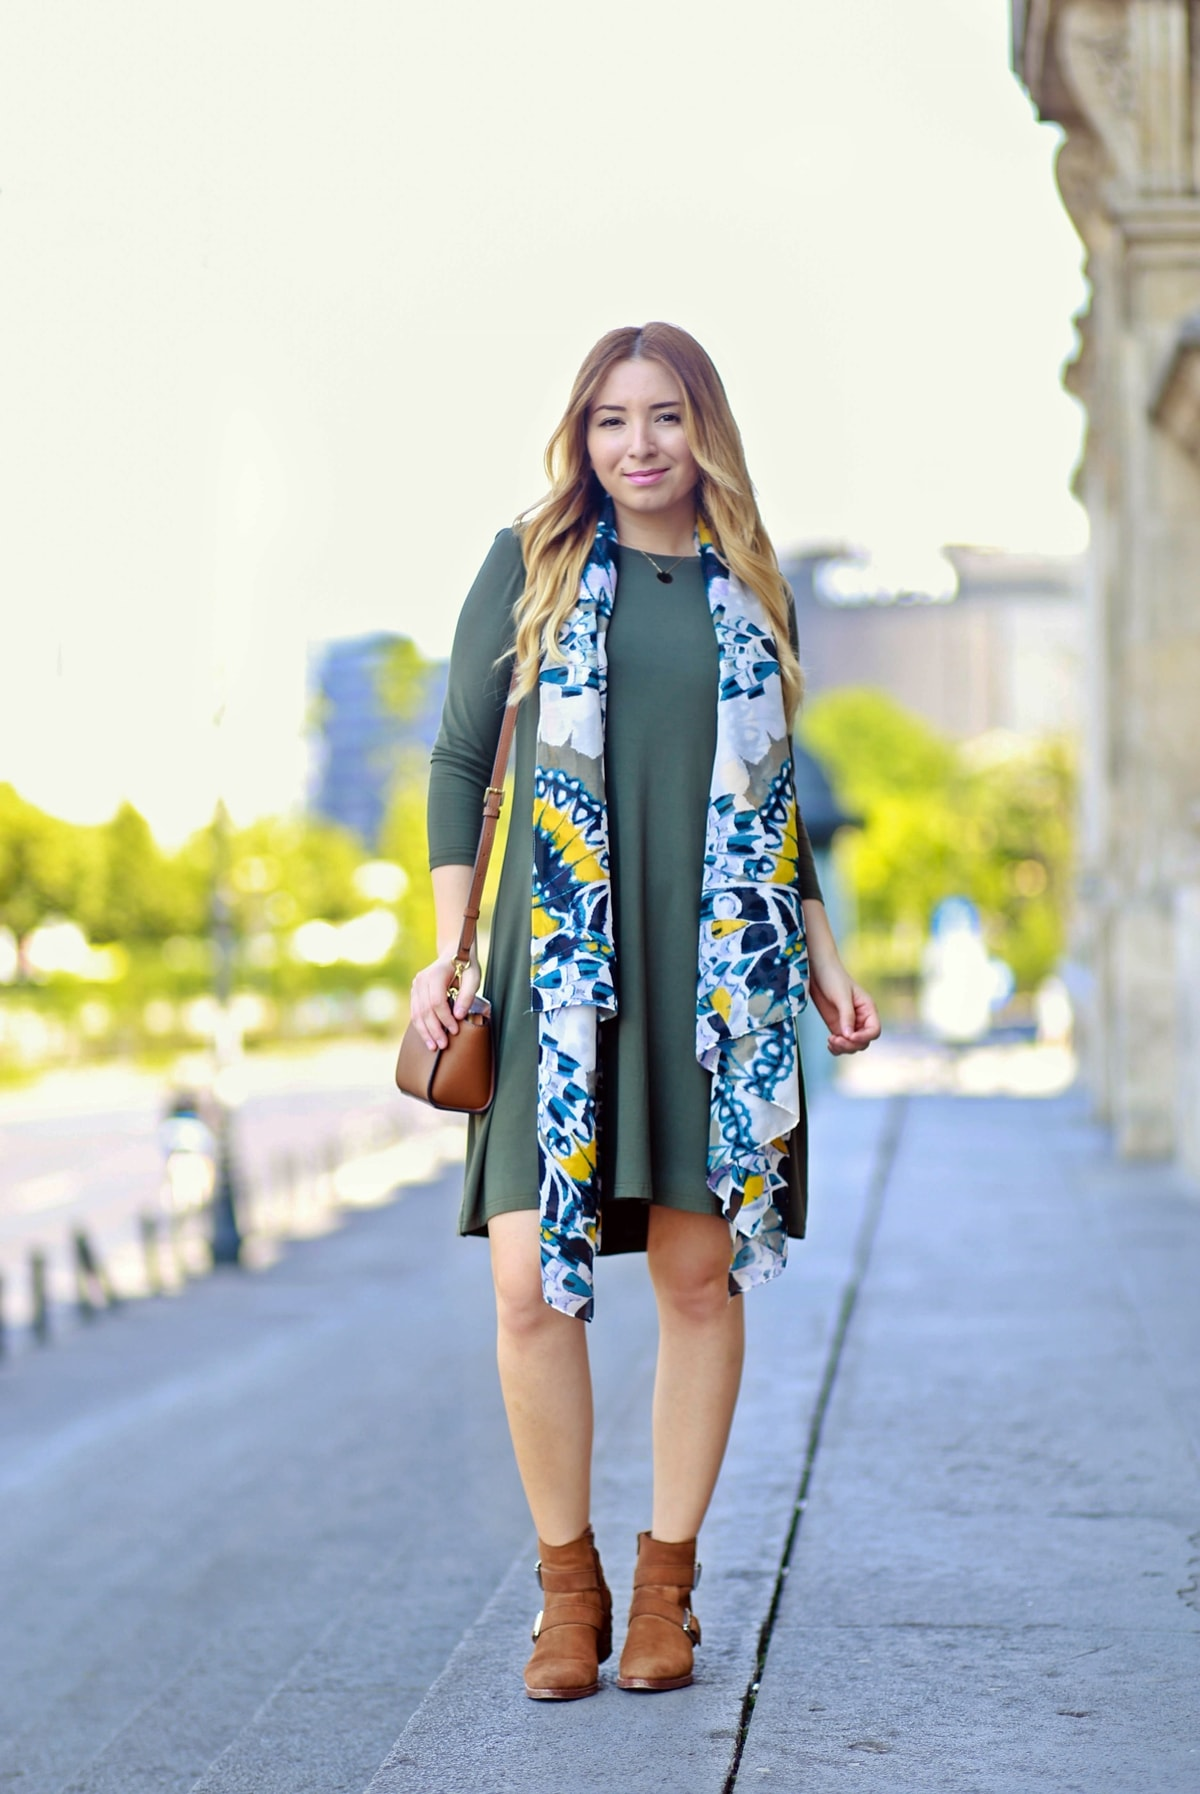 street style: military green dress, hm scarf multi color print, romwe, michael kors mini selma bag, brown boots, andreea ristea blog